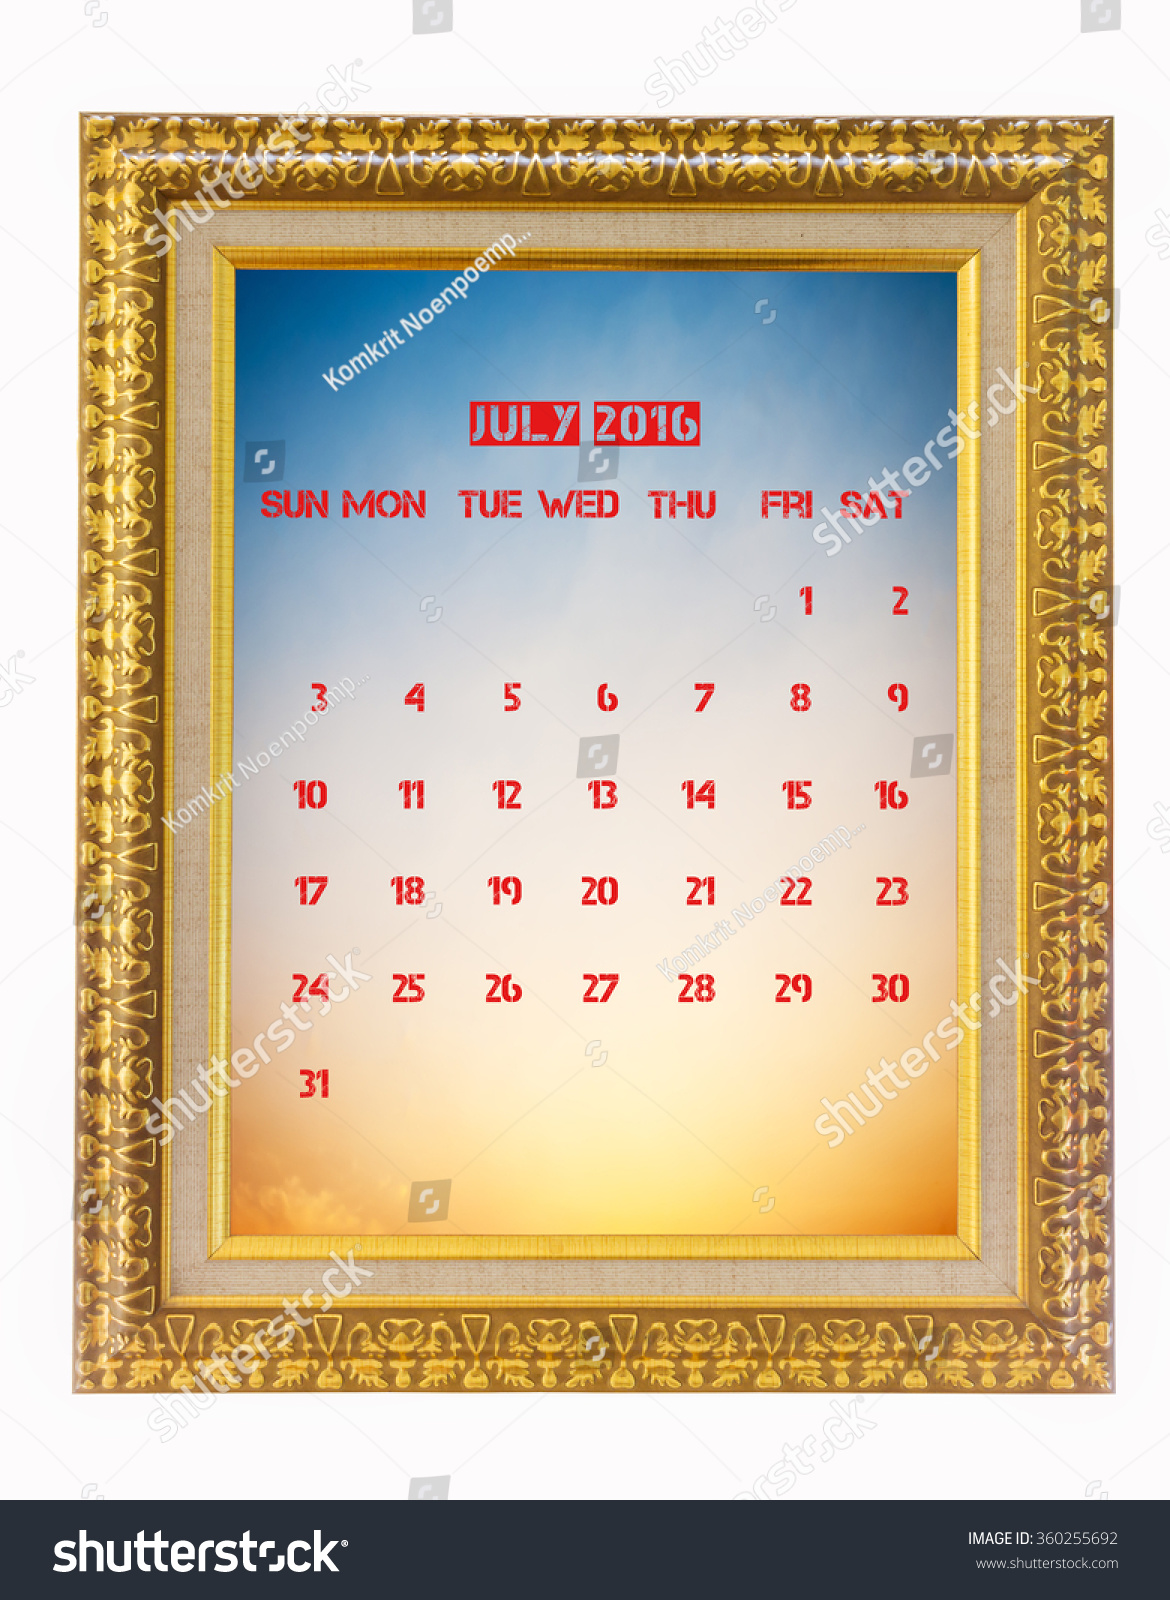 royalty free july 2016 calendar on photo frame 360255692 stock